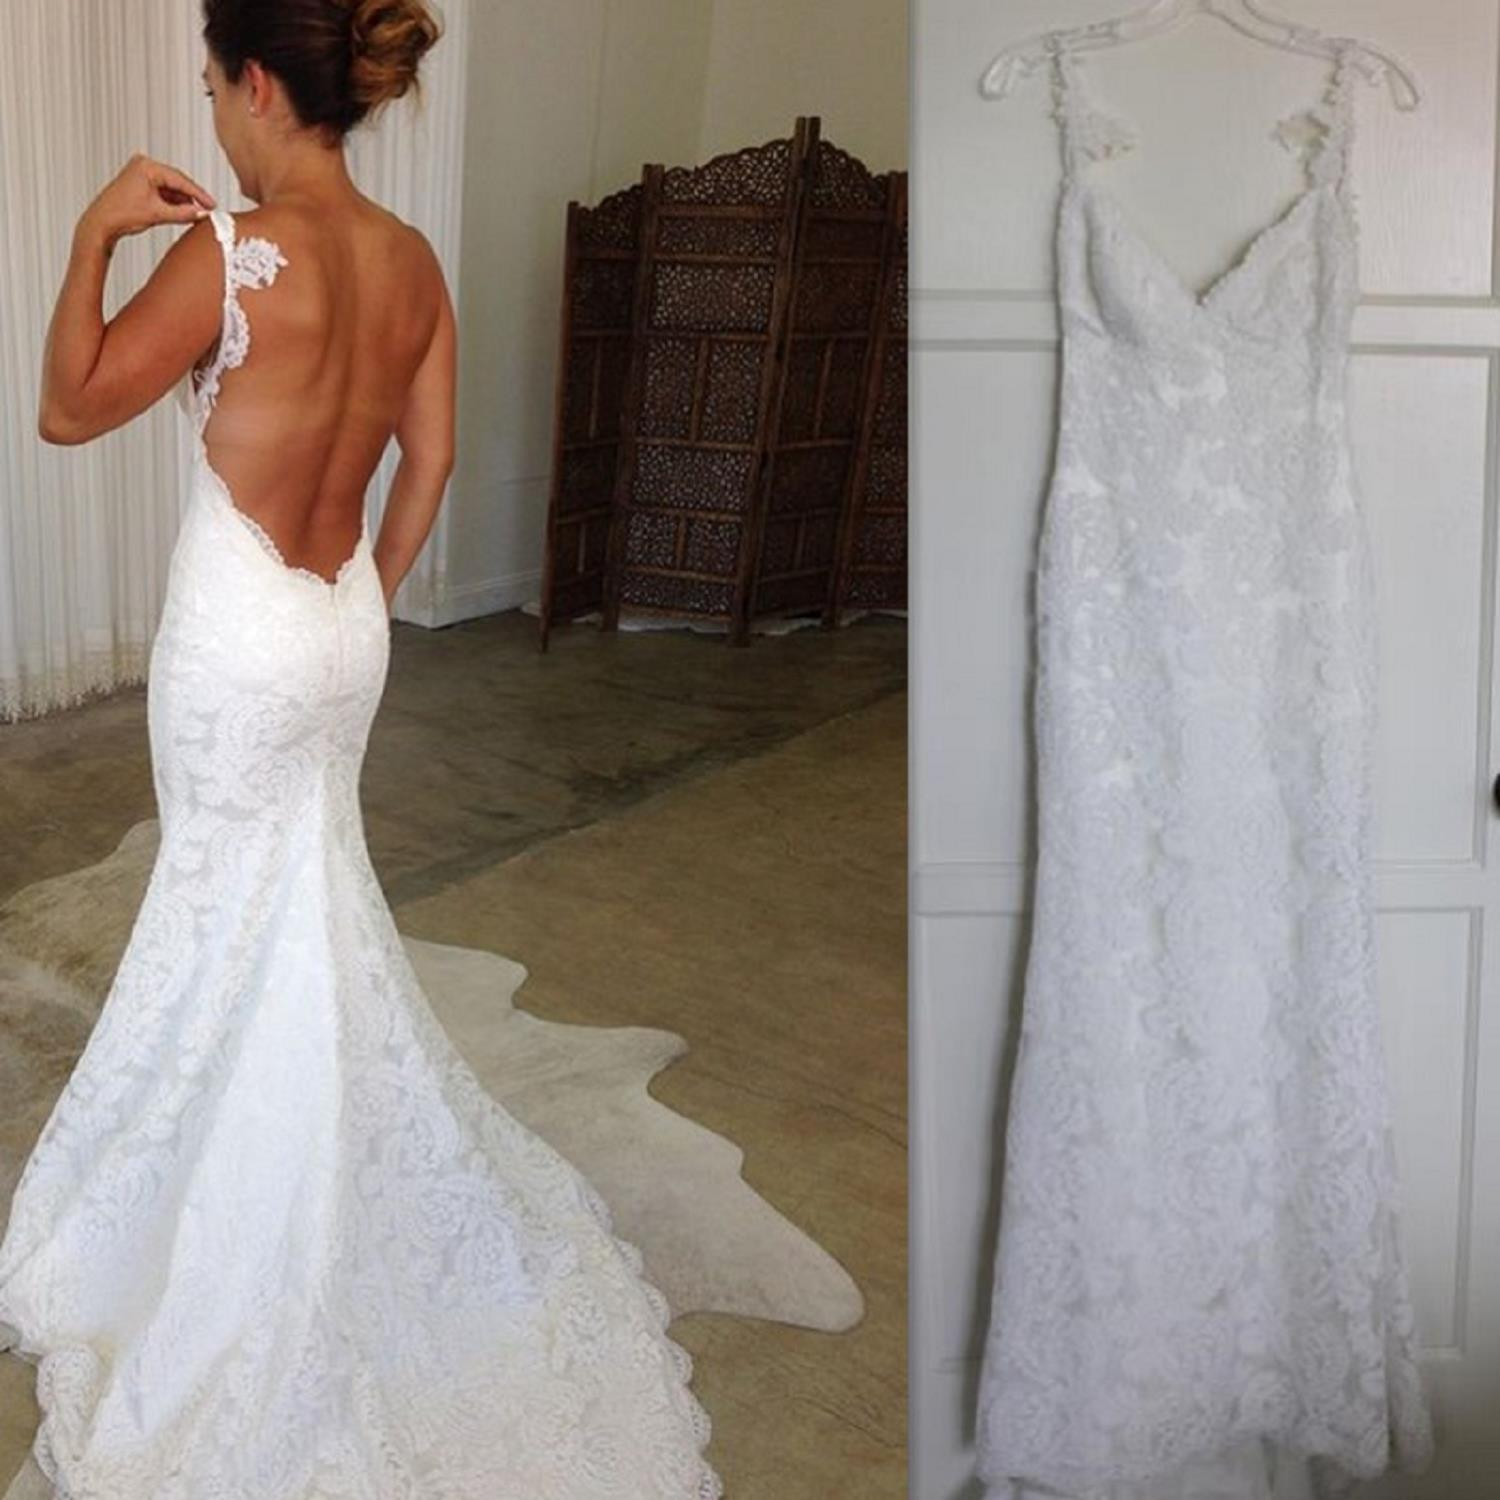 2018 Beach White Lace Backless Wedding Dresses Mermaid Spaghetti Straps Vintage Bridal Gowns Custom Made Dress For Brides Cheap Price Wedding Mermaid Dress Alfred Wedding Dresses From Honeeygirl 127 27 Dhgate Com,Outdoor Wedding Fall Wedding Guest Dresses 2020